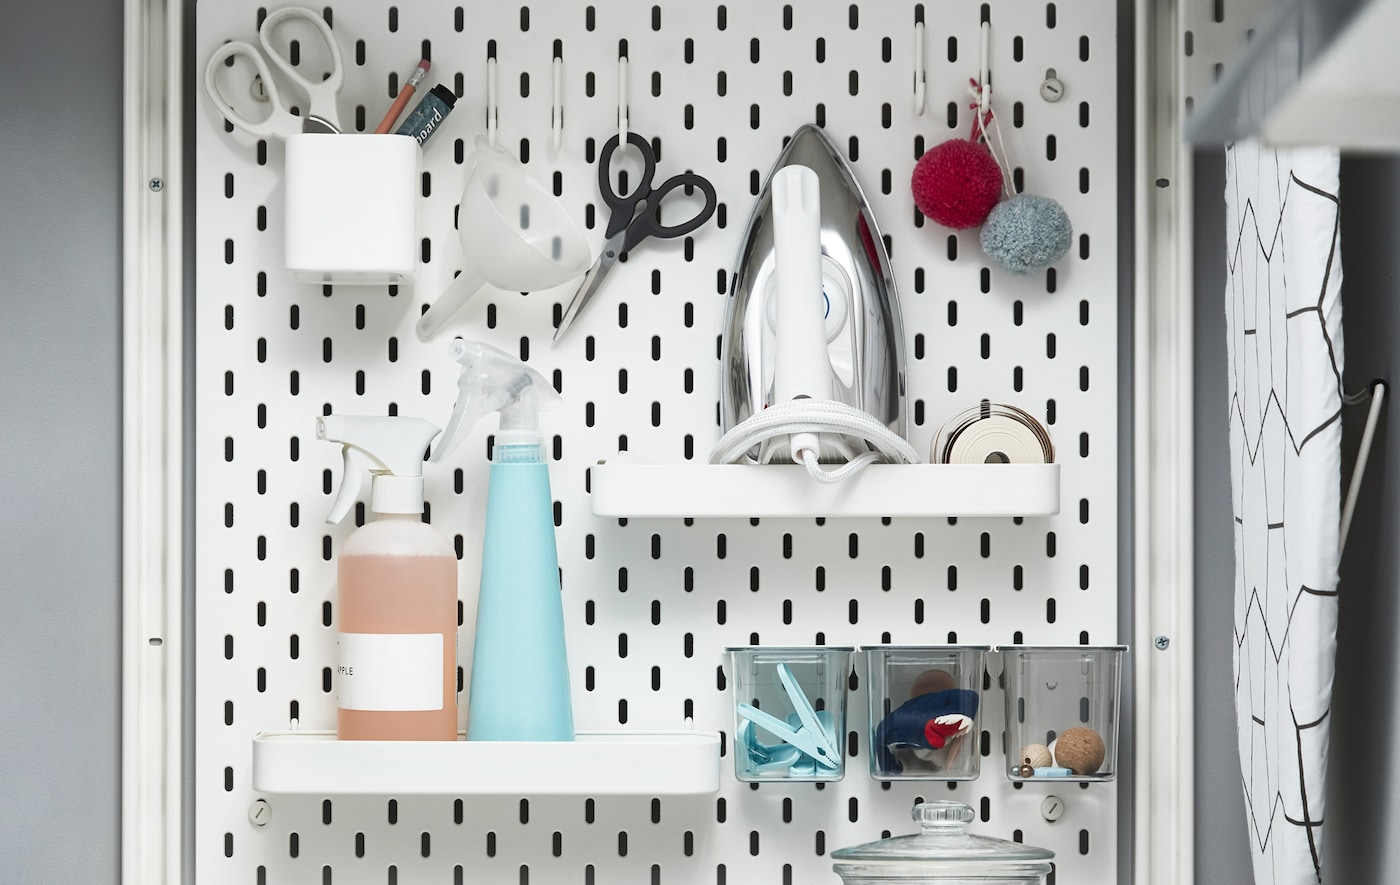 Laundry-related items stored on shelves, in pots and on hooks on a white pegboard.